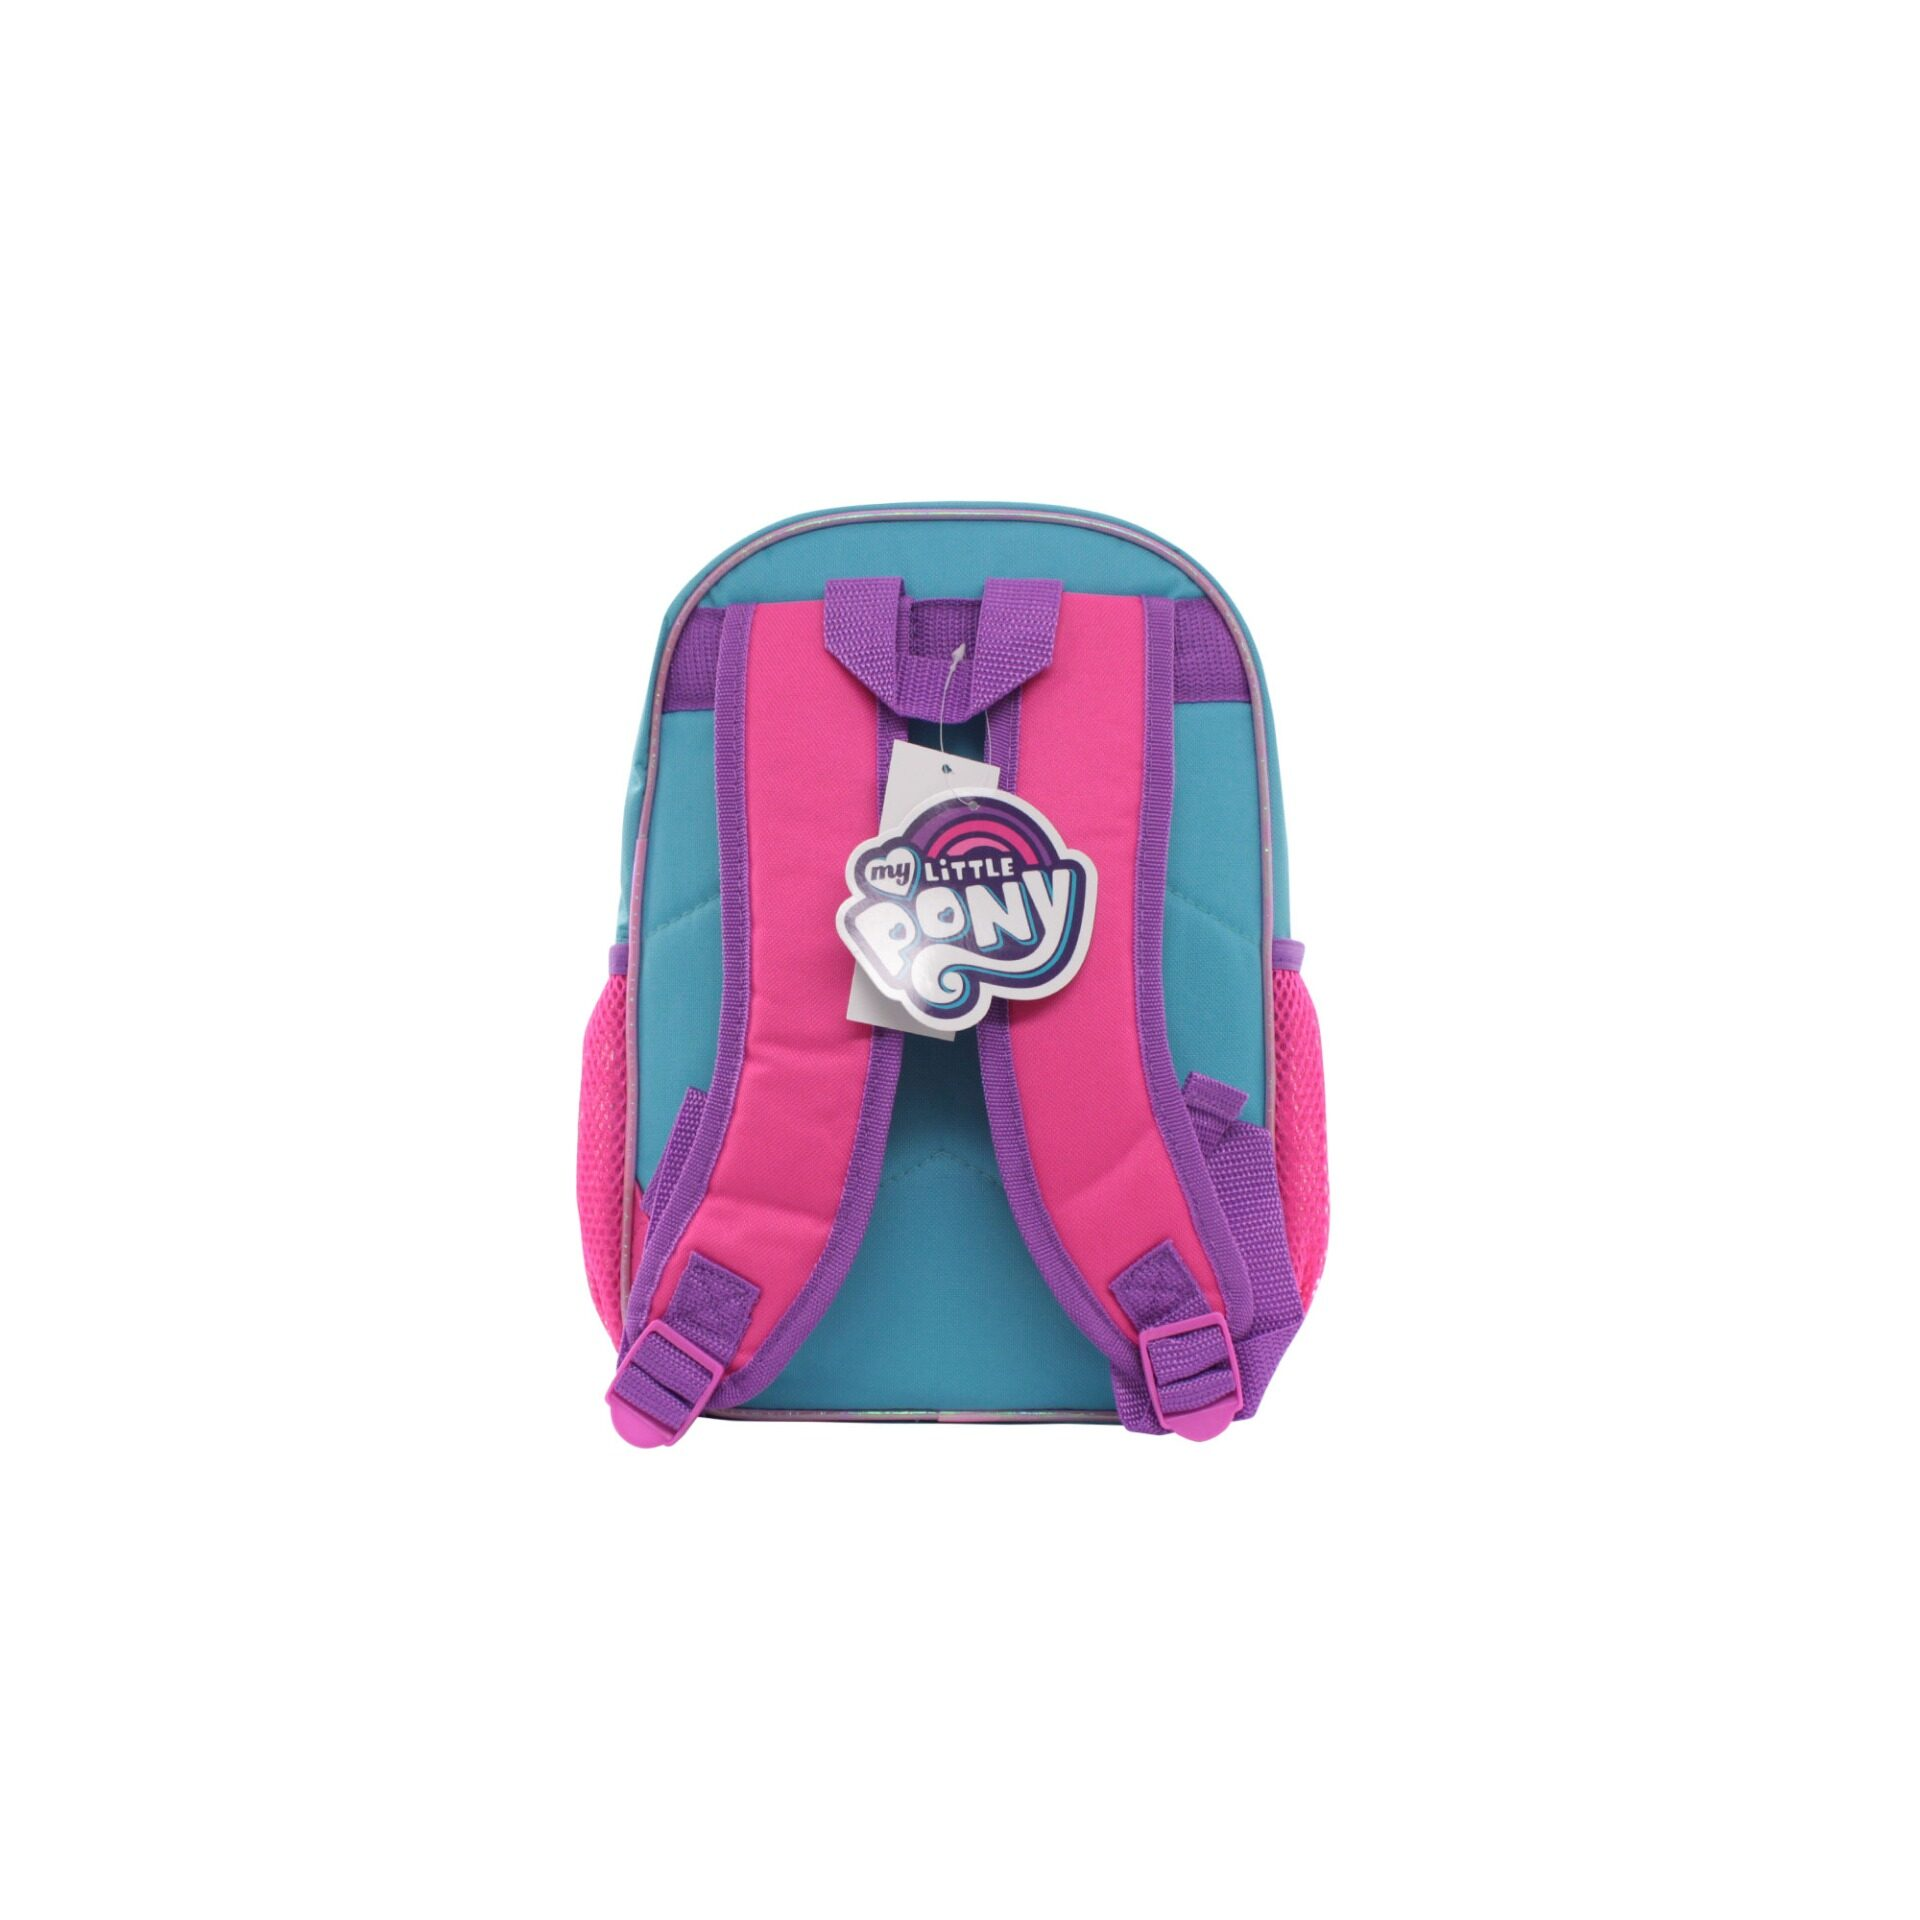 My Little Pony Twilight Sparkle Pinkie Love & Party Kids Girls 12 Inch Nylon School Backpack (Pink & Light Blue)